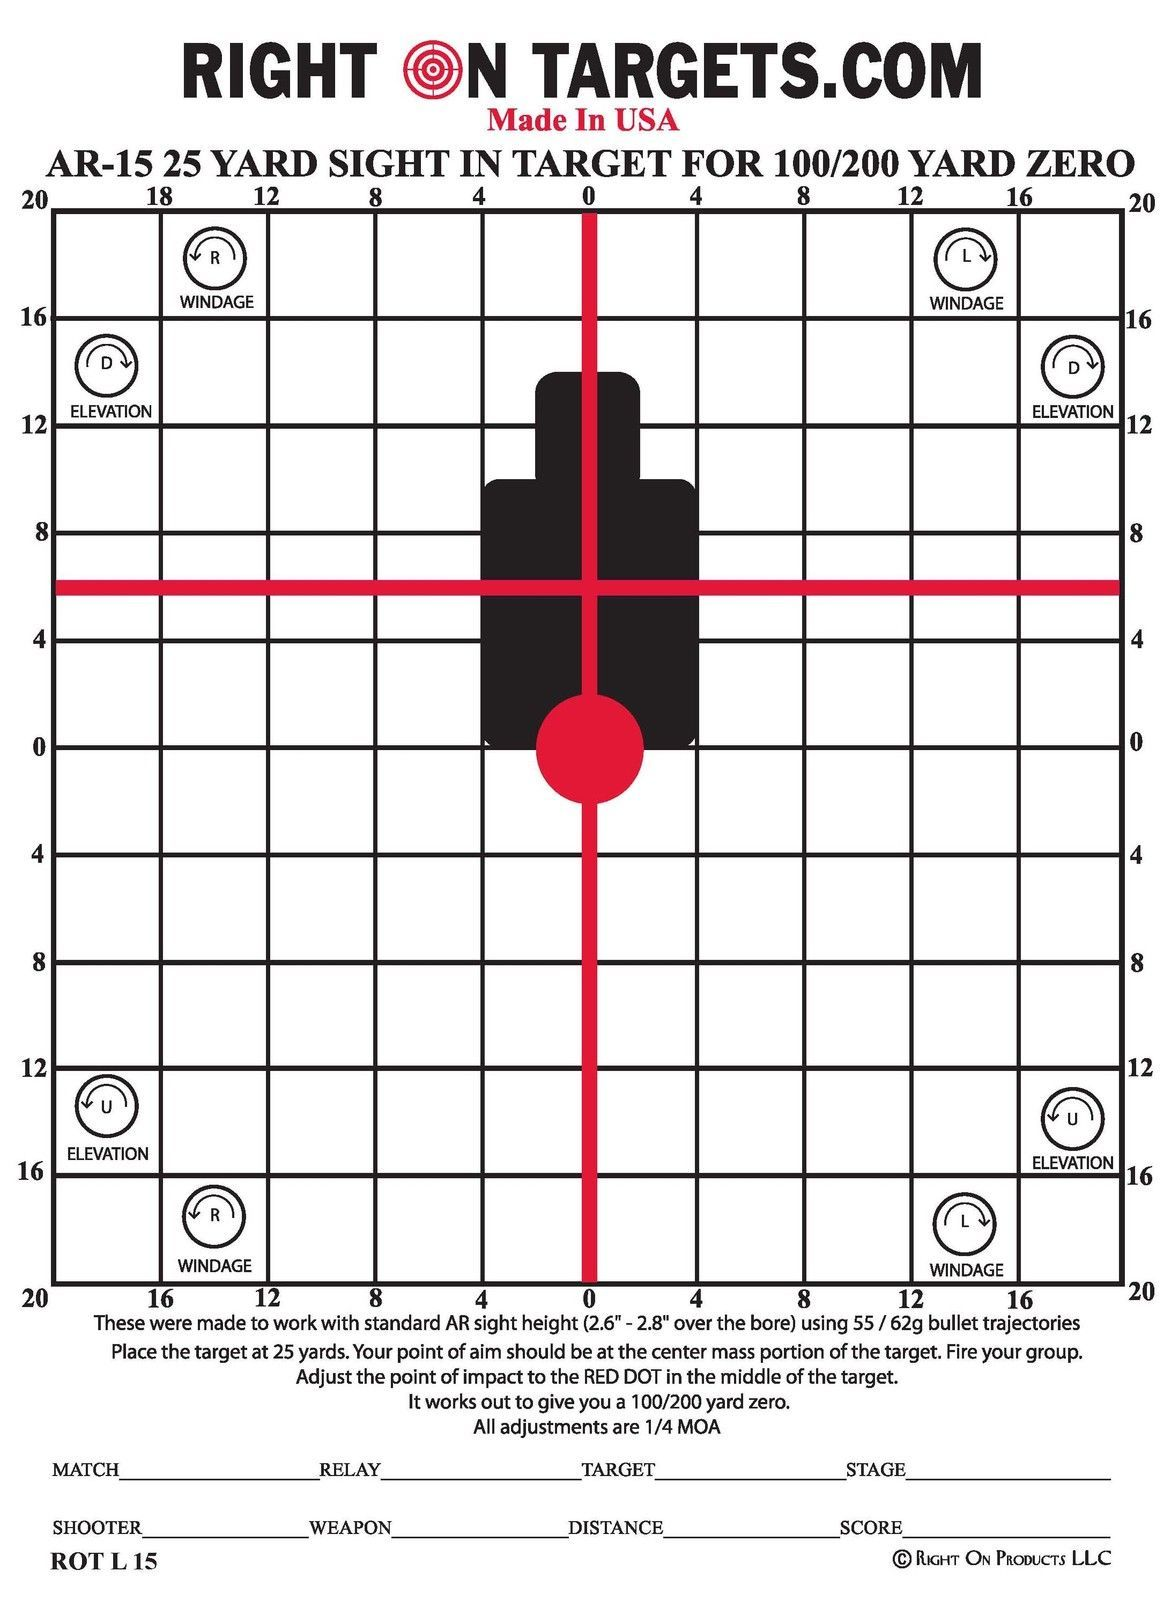 75 AR rifle sight in targets 25-yard (11x15) and 50